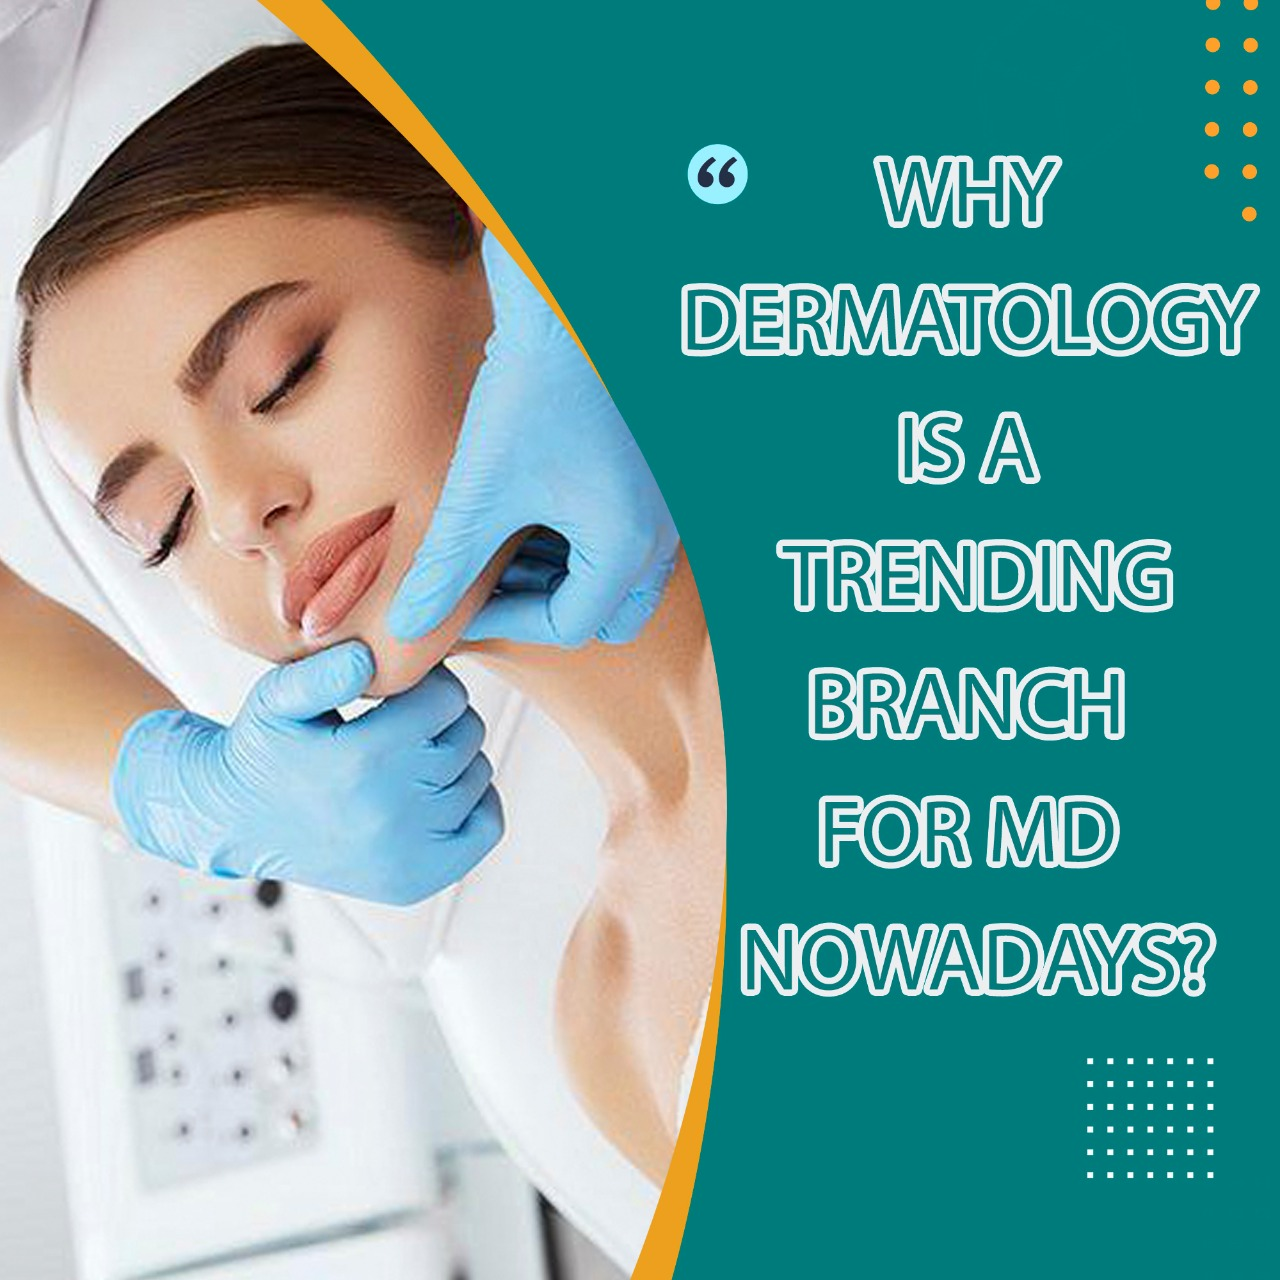 WHY DERMATOLOGY IS A TRENDING BRANCH FOR MD NOWADAYS